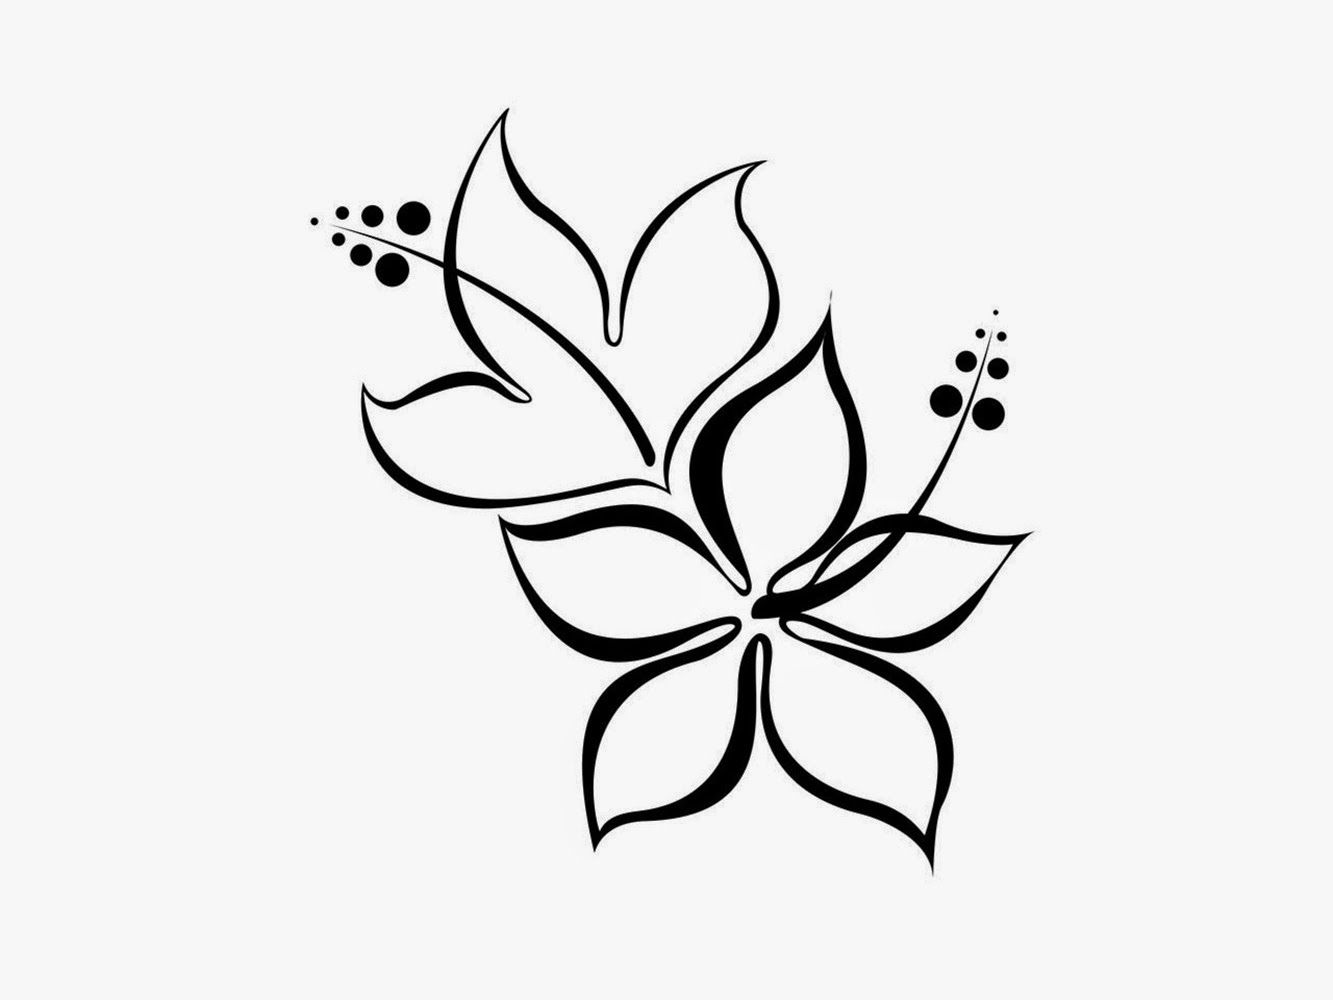 Simple Flower Designs Pencil Drawing Black And White Flower Design